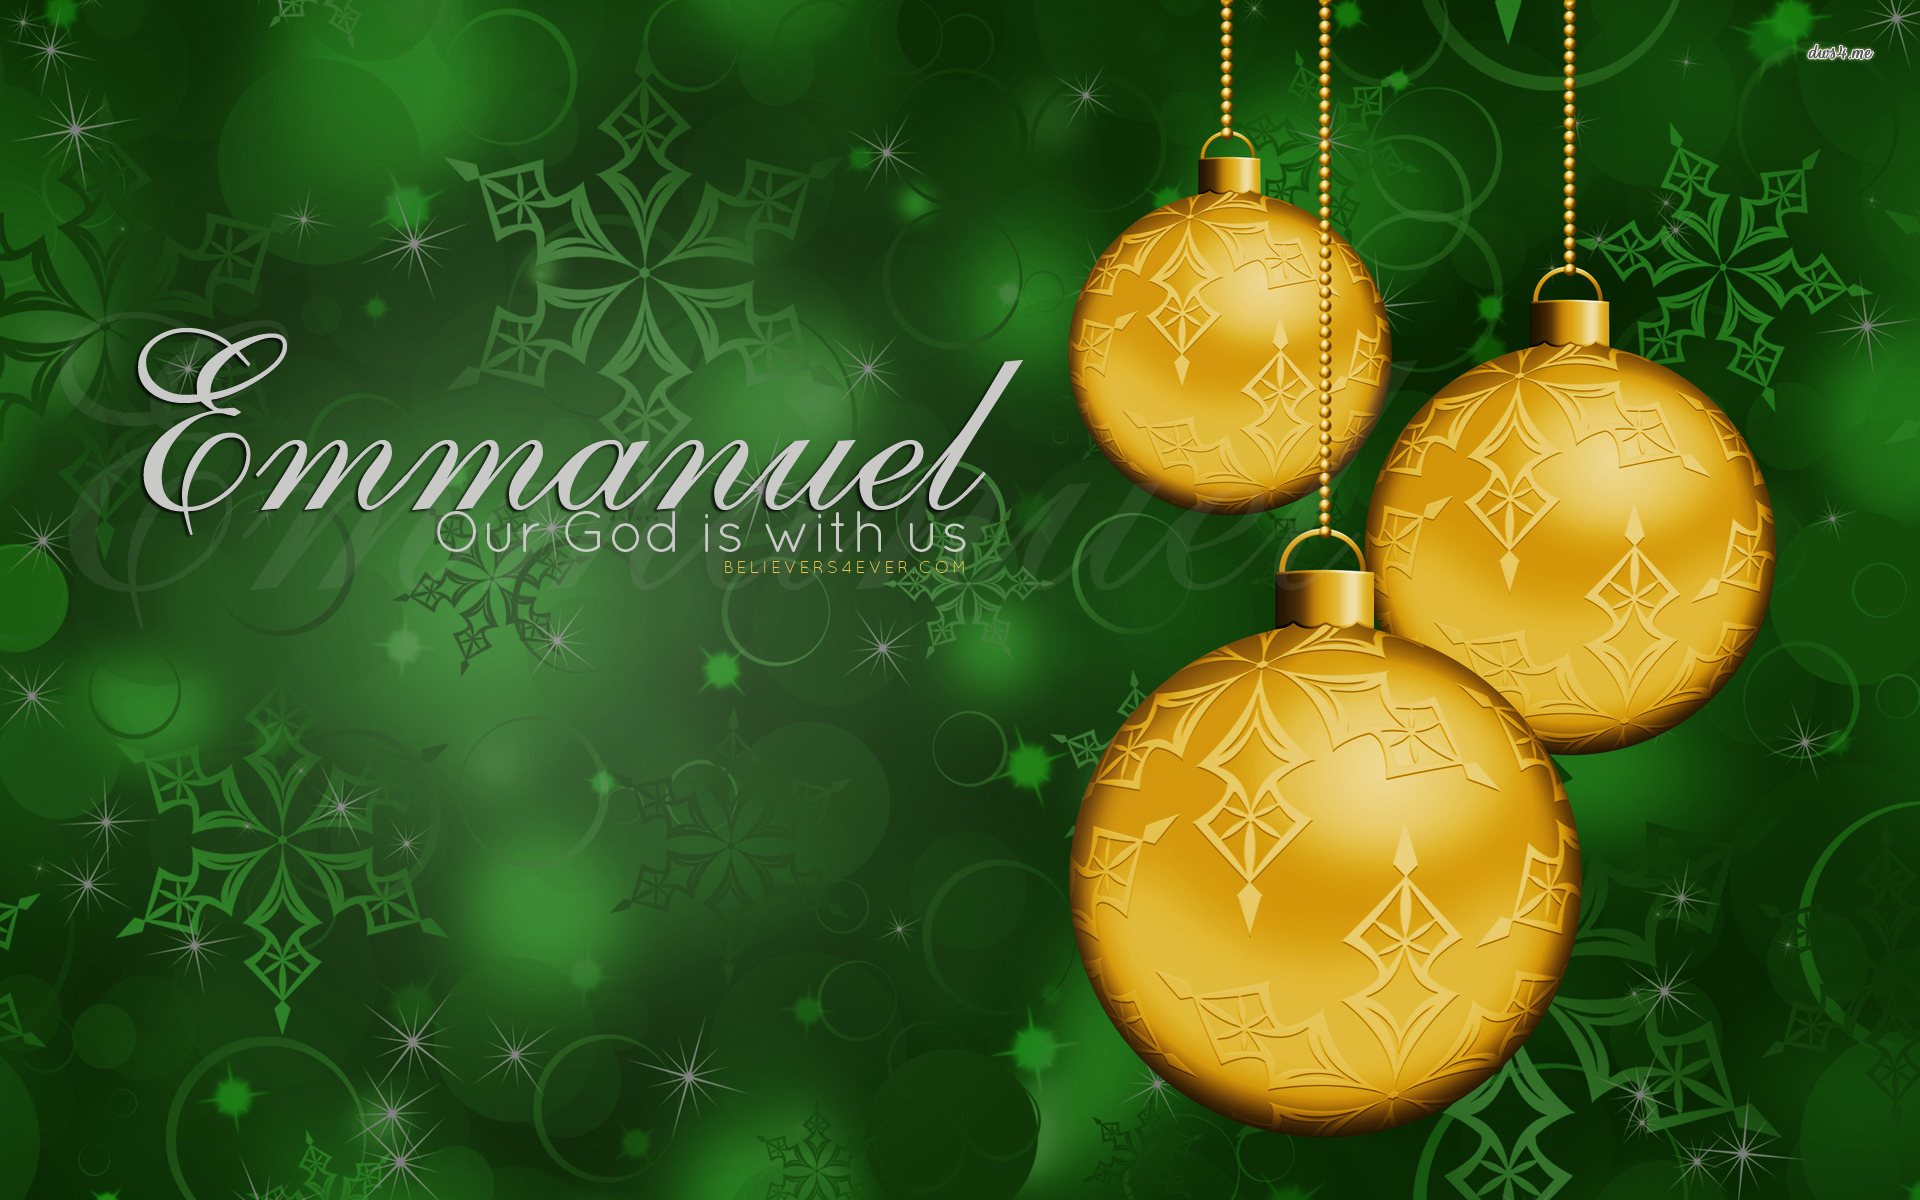 Emmanuel Christian Christmas Desktop wallpaper